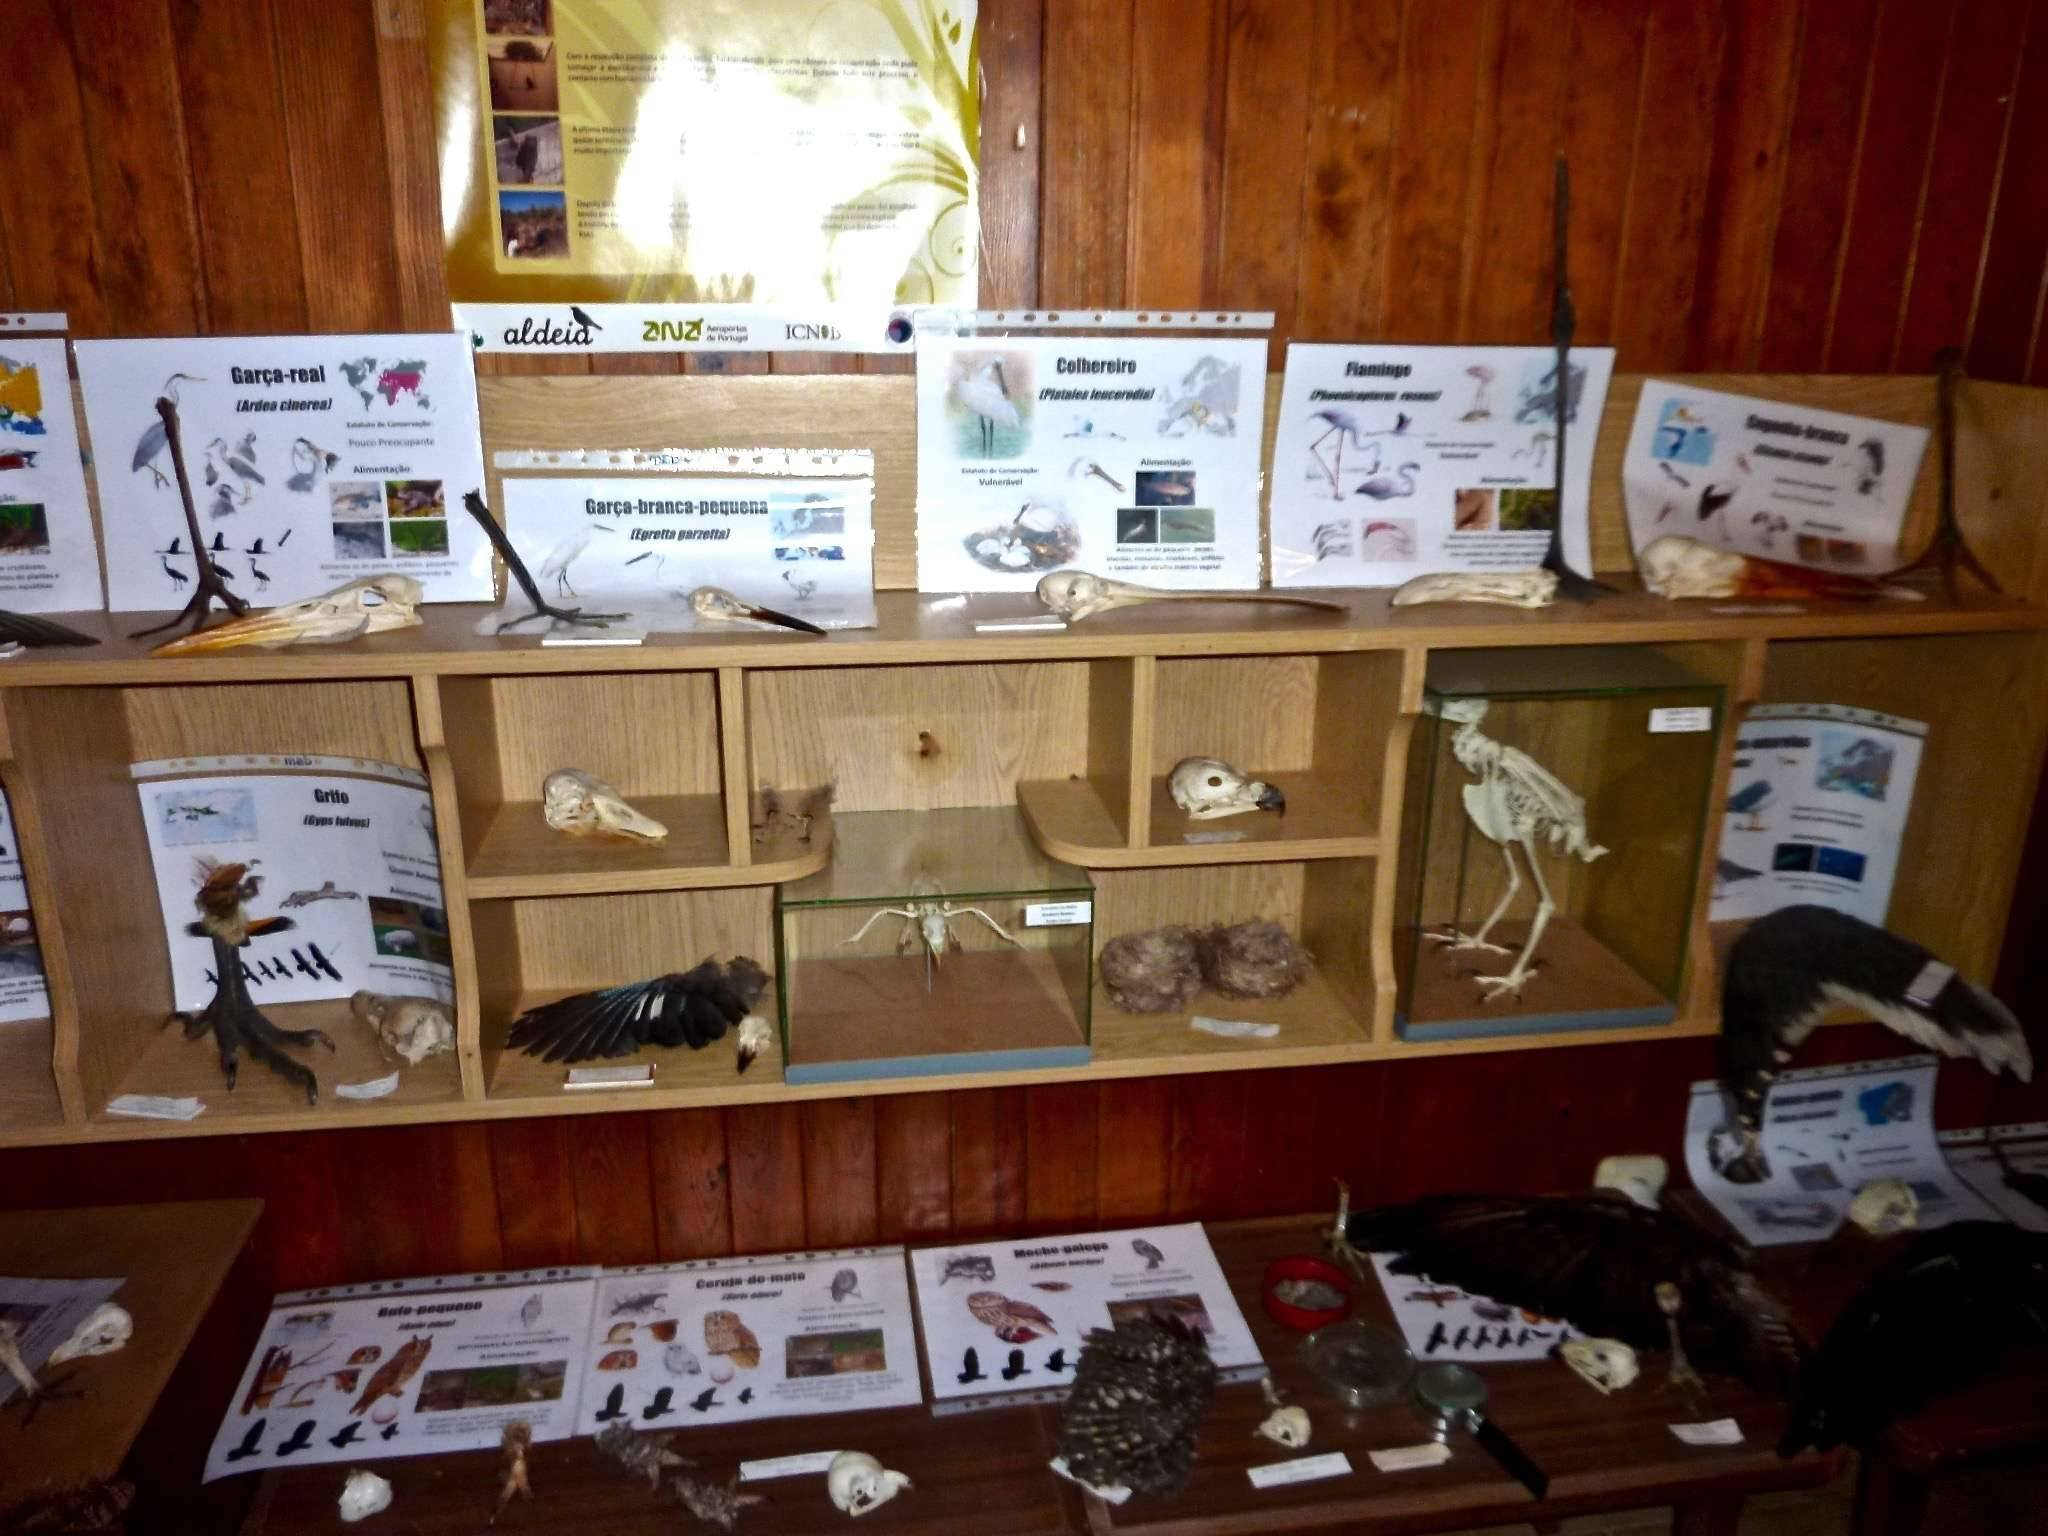 Displays in the Information Centre